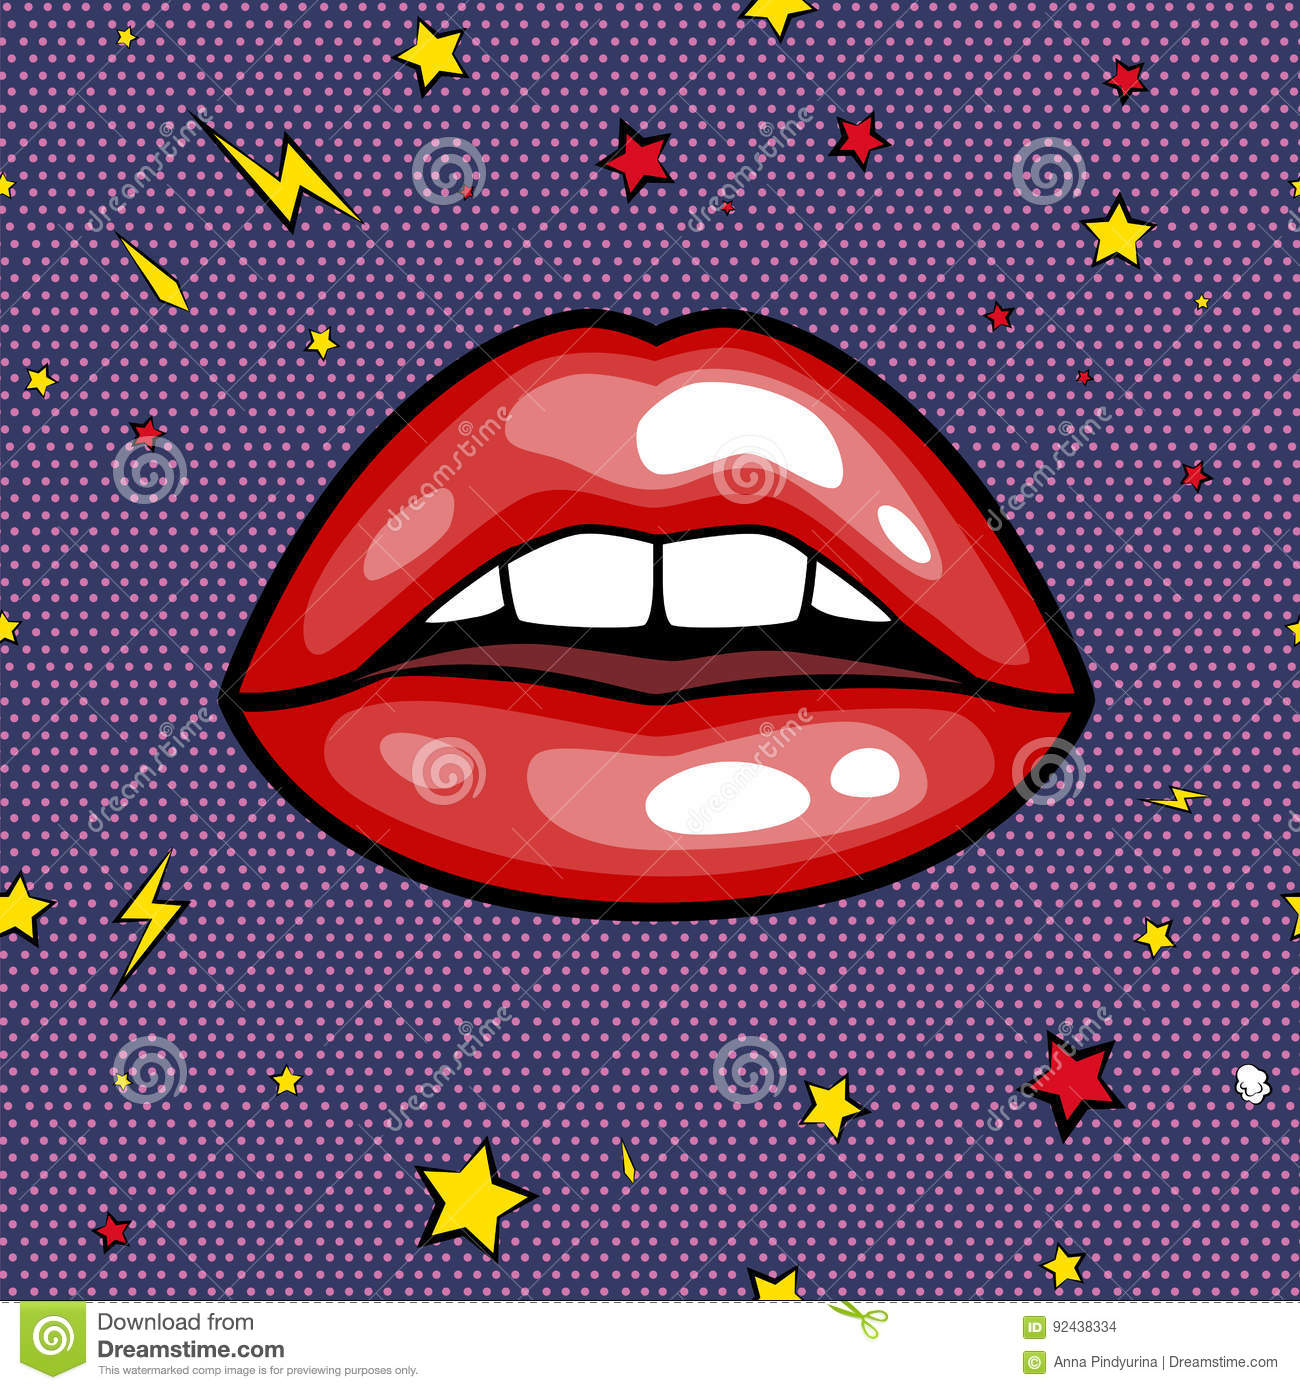 Fashion Girls Lips With Red Lipstick In Cartoon Pop Art Style Patch Badges Cool Retro Collection Sticker Vector Stock Vector Illustration Of Drawing Mouth 92438334